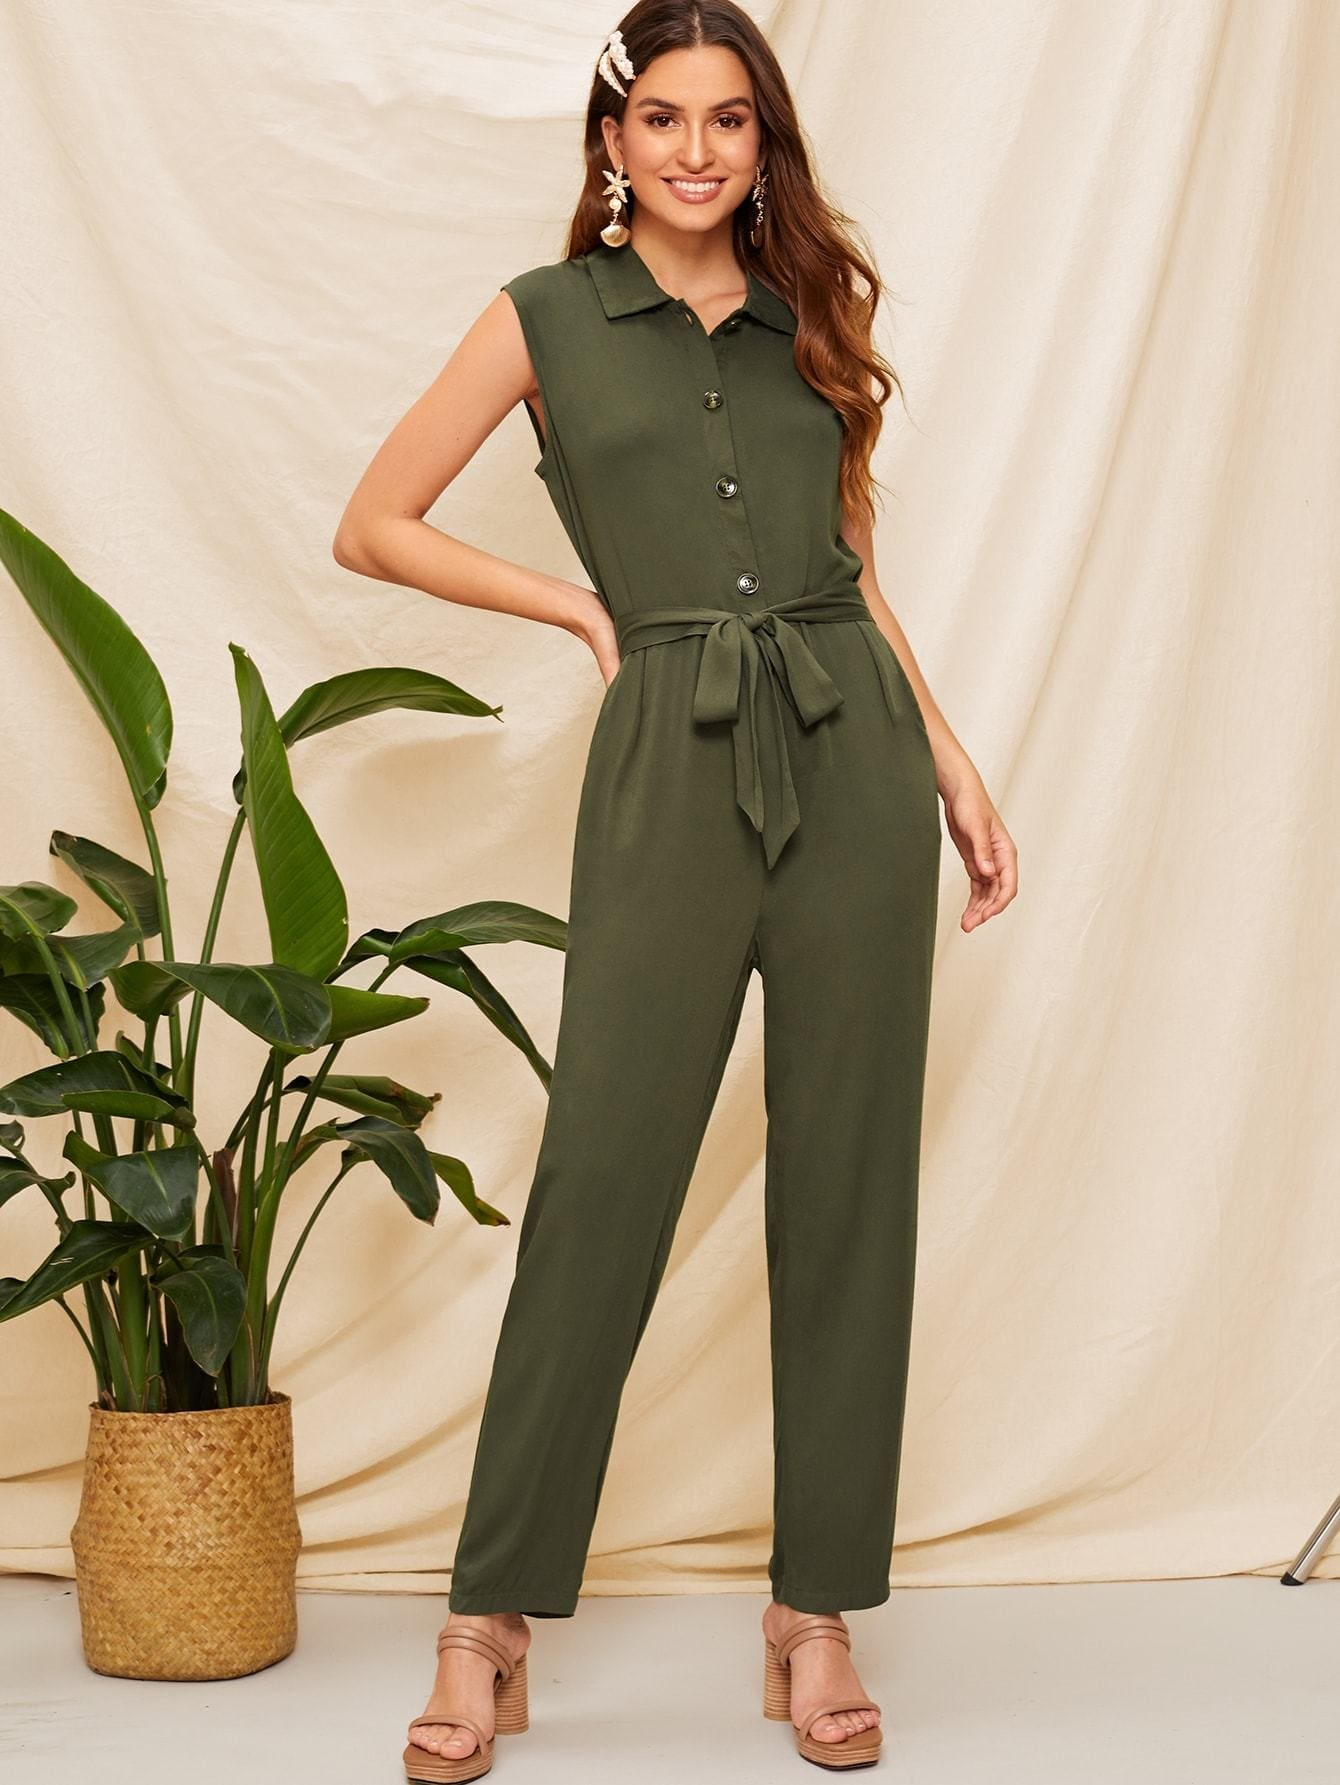 Slant Pocket Sleeveless Belted Shirt Jumpsuit - S - Womens Jumpsuits